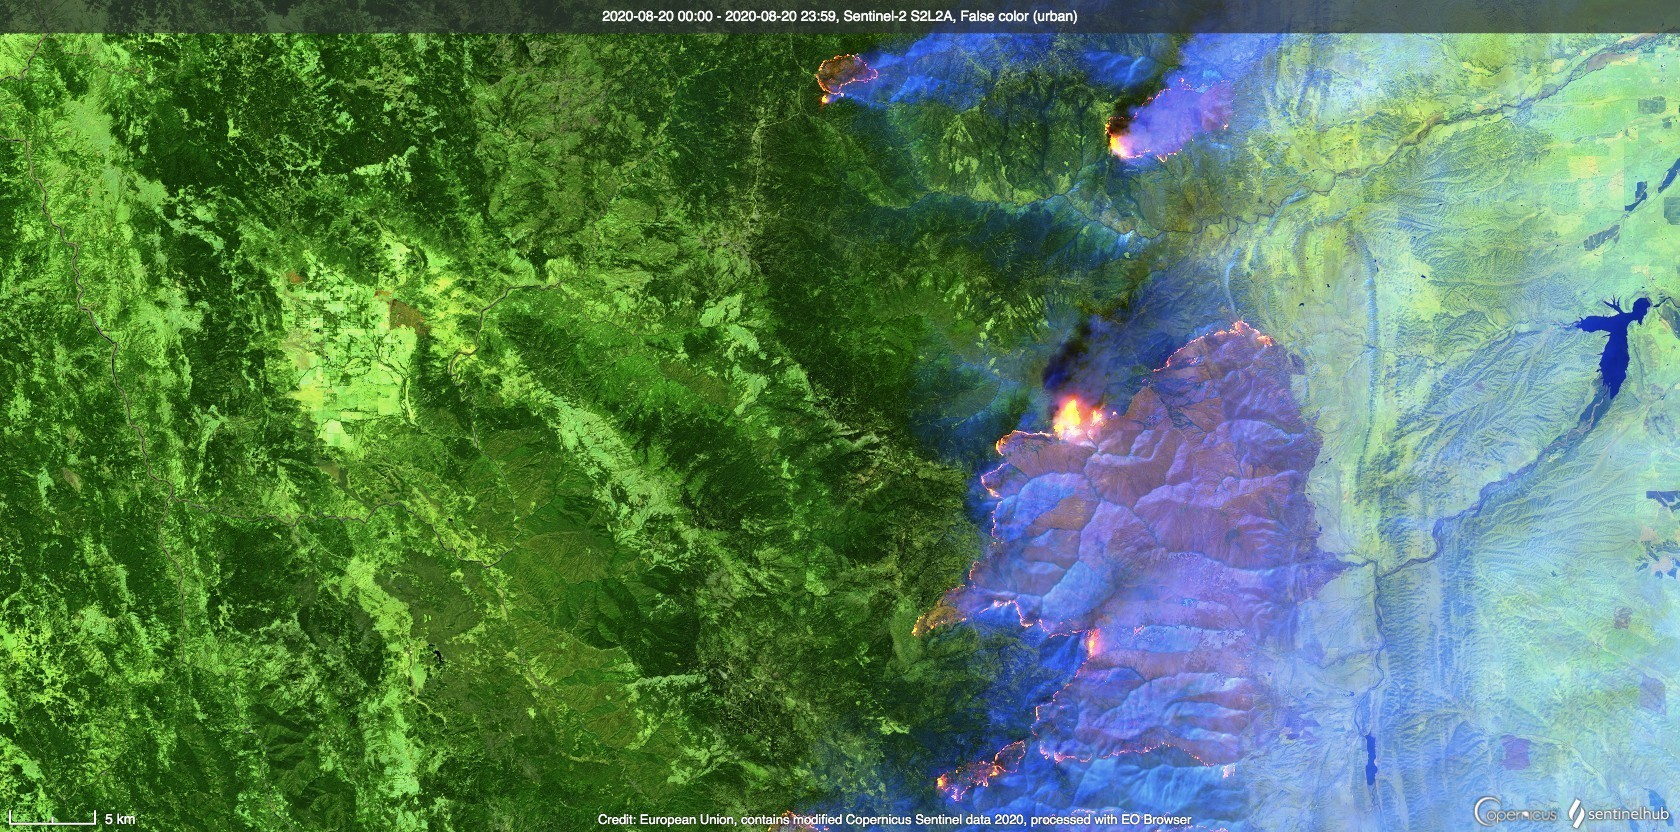 Wildfires in California captured by Sentinel-2, August 20, 2020